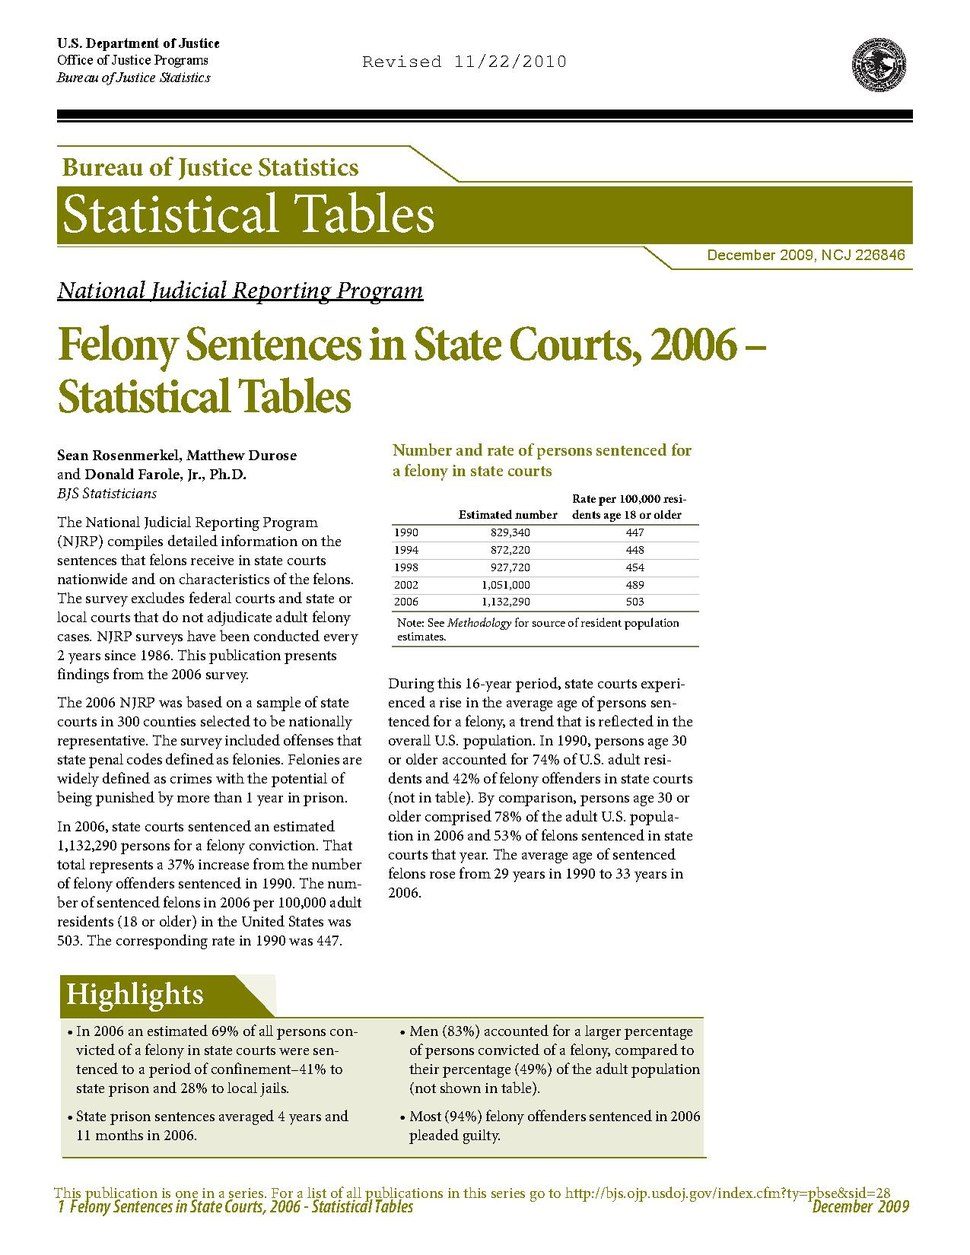 Felony Sentences in State Courts.pdf